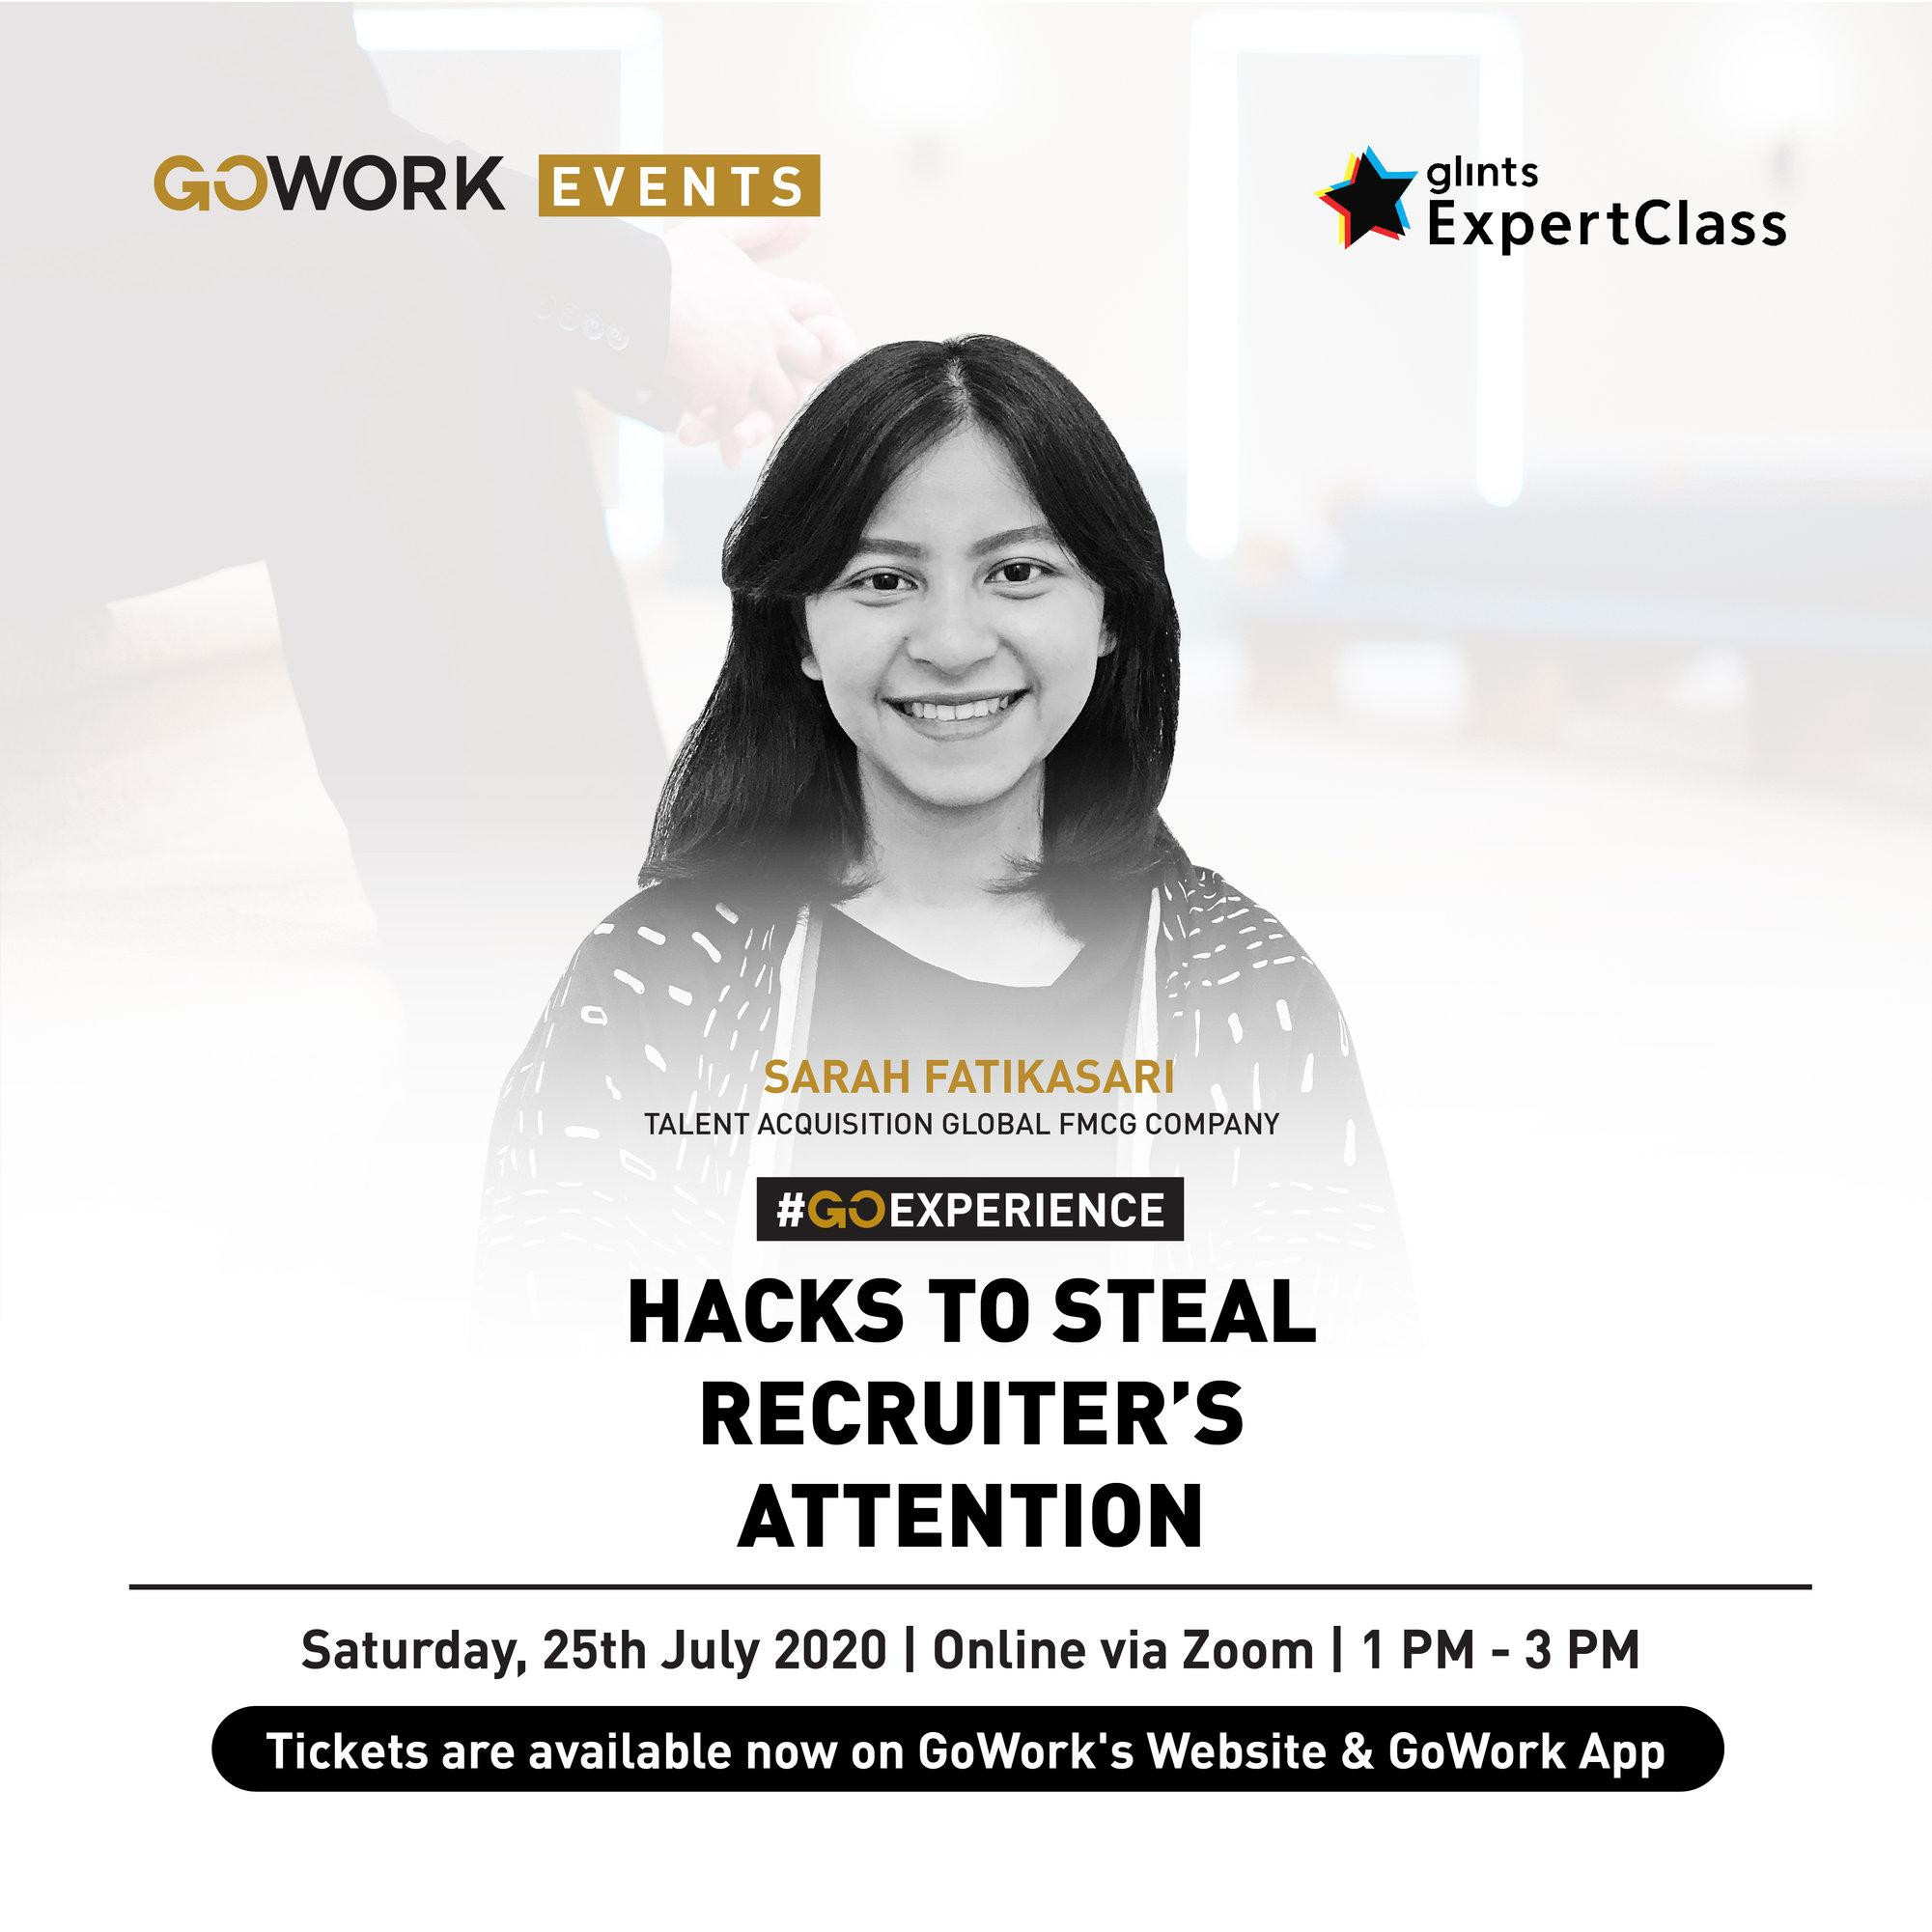 Hacks To Steal Recruiter's Attention